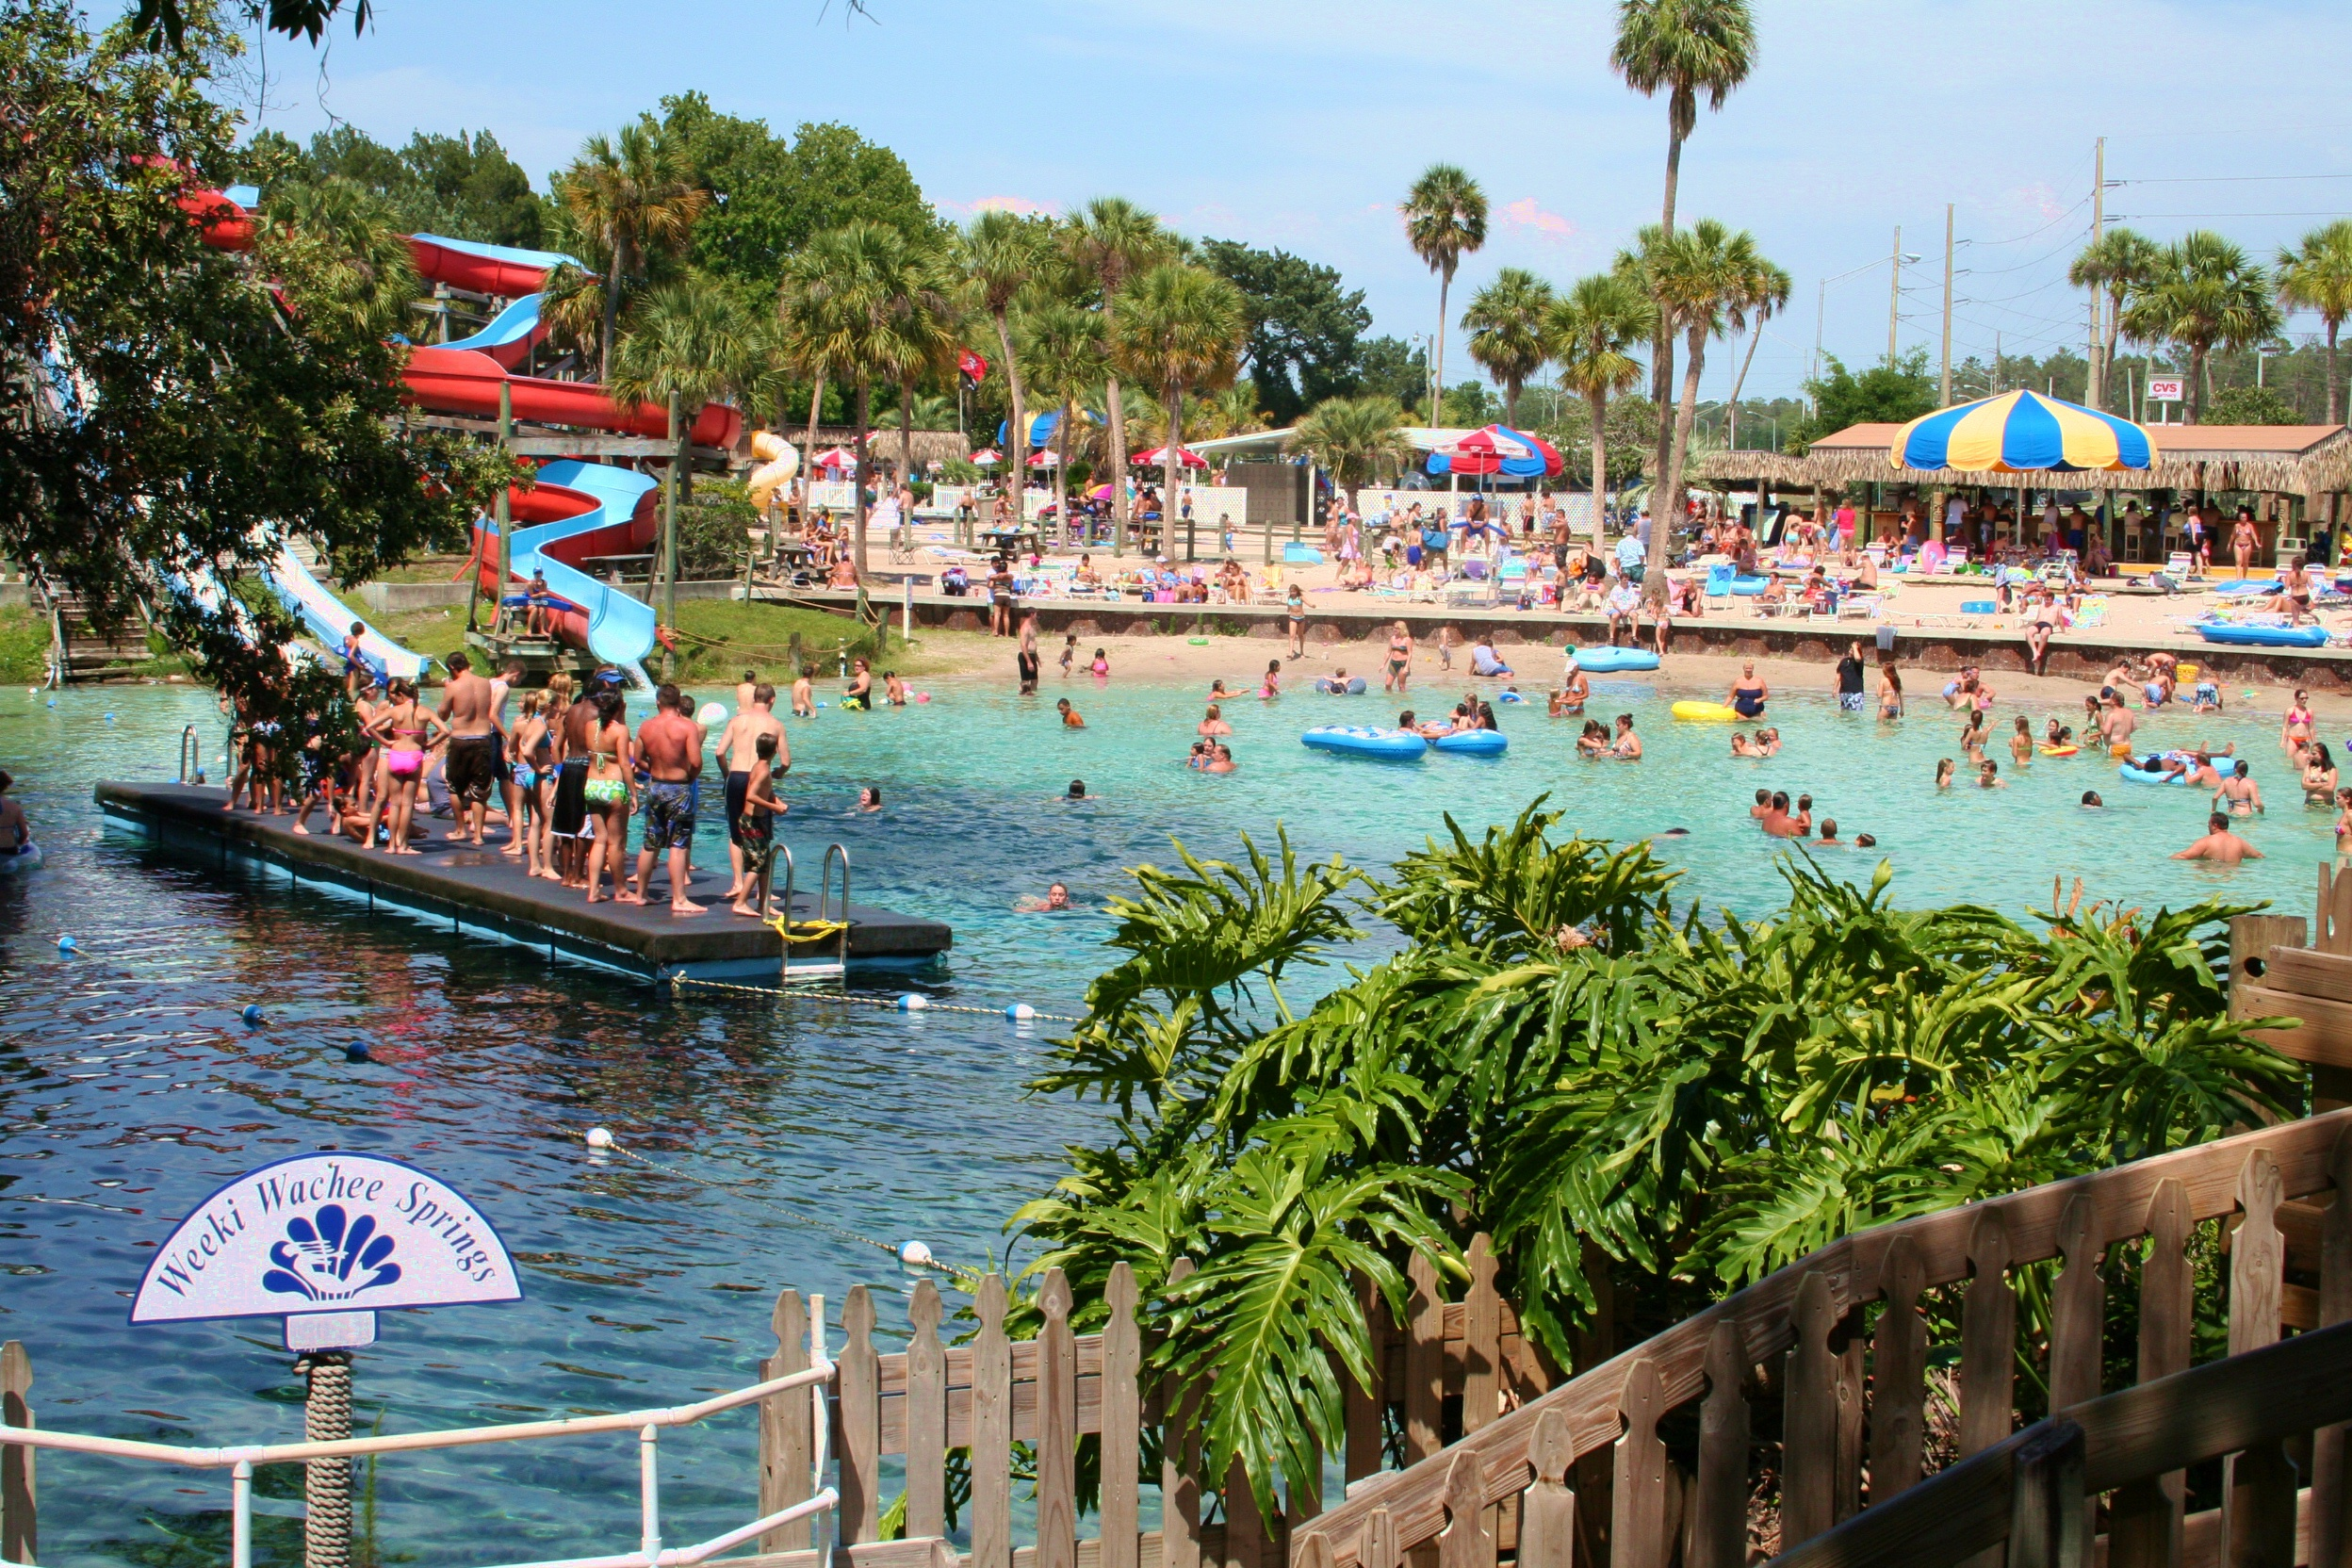 Flume Gorge The White Mountains, Weeki Wachee: Buccaneer Bay Water Park-FL's ONLY spring-fed ...